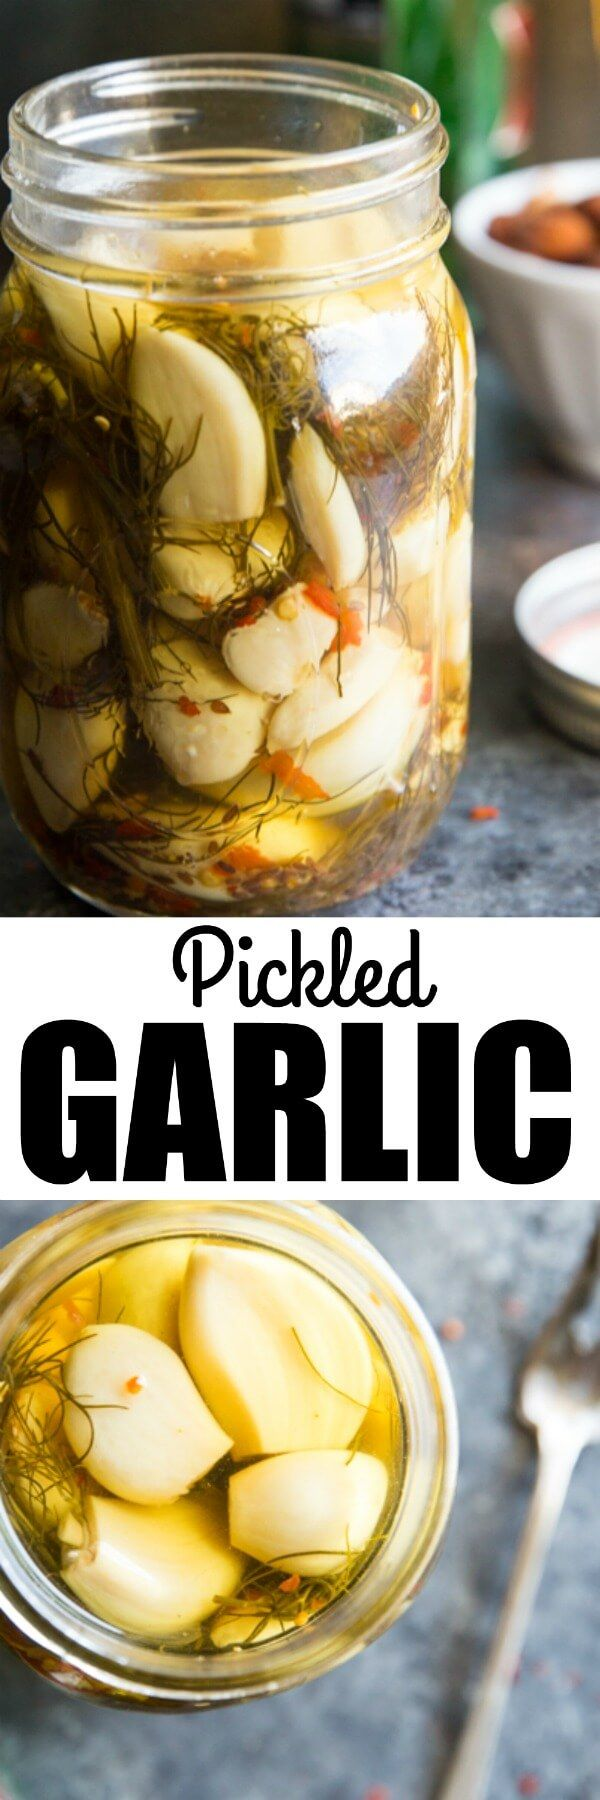 If you love pickles and you love garlic, you just found a tasty new best friend. This Pickled Garlic Recipe also makes a great starter canning project! via @culinaryhill